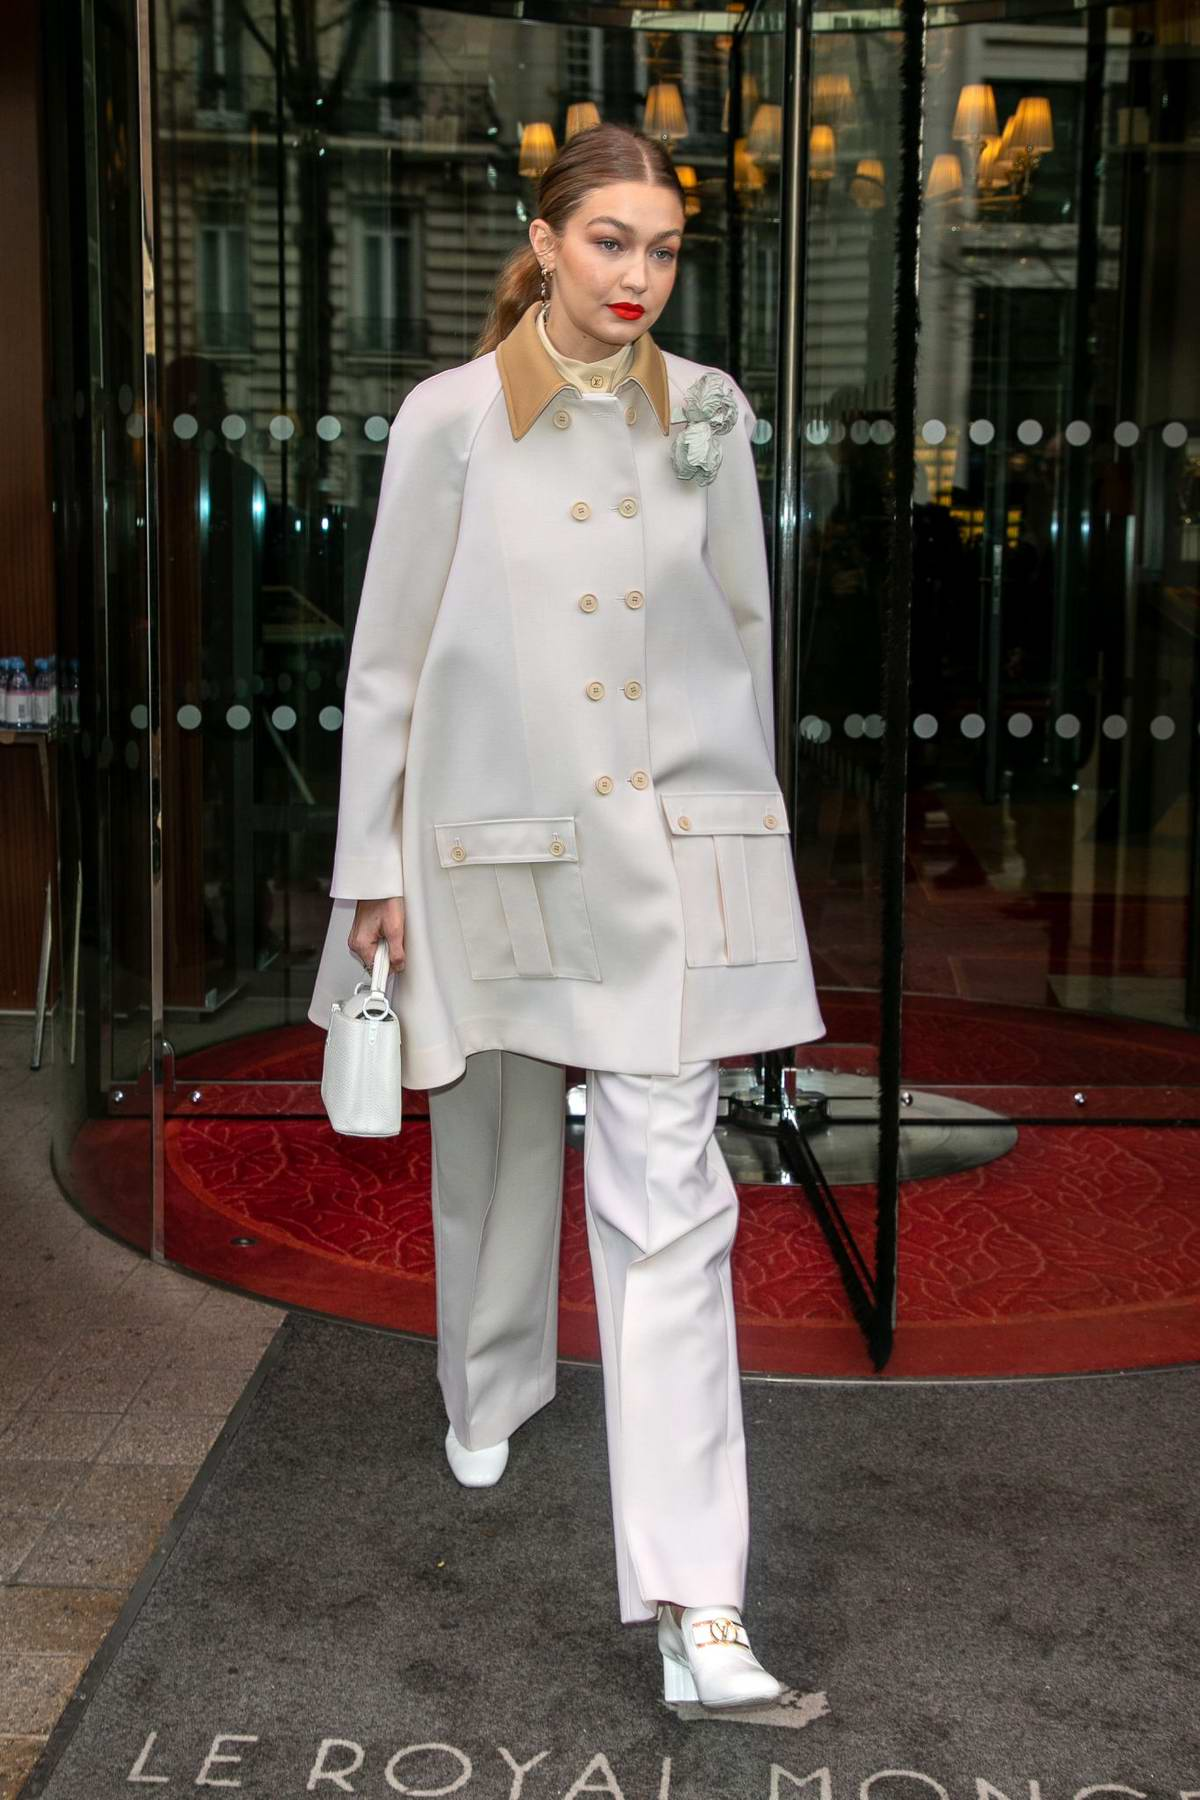 Gigi Hadid is fashionable in white while heading out to a fitting during Paris Fashion Week 2020 in Paris, France